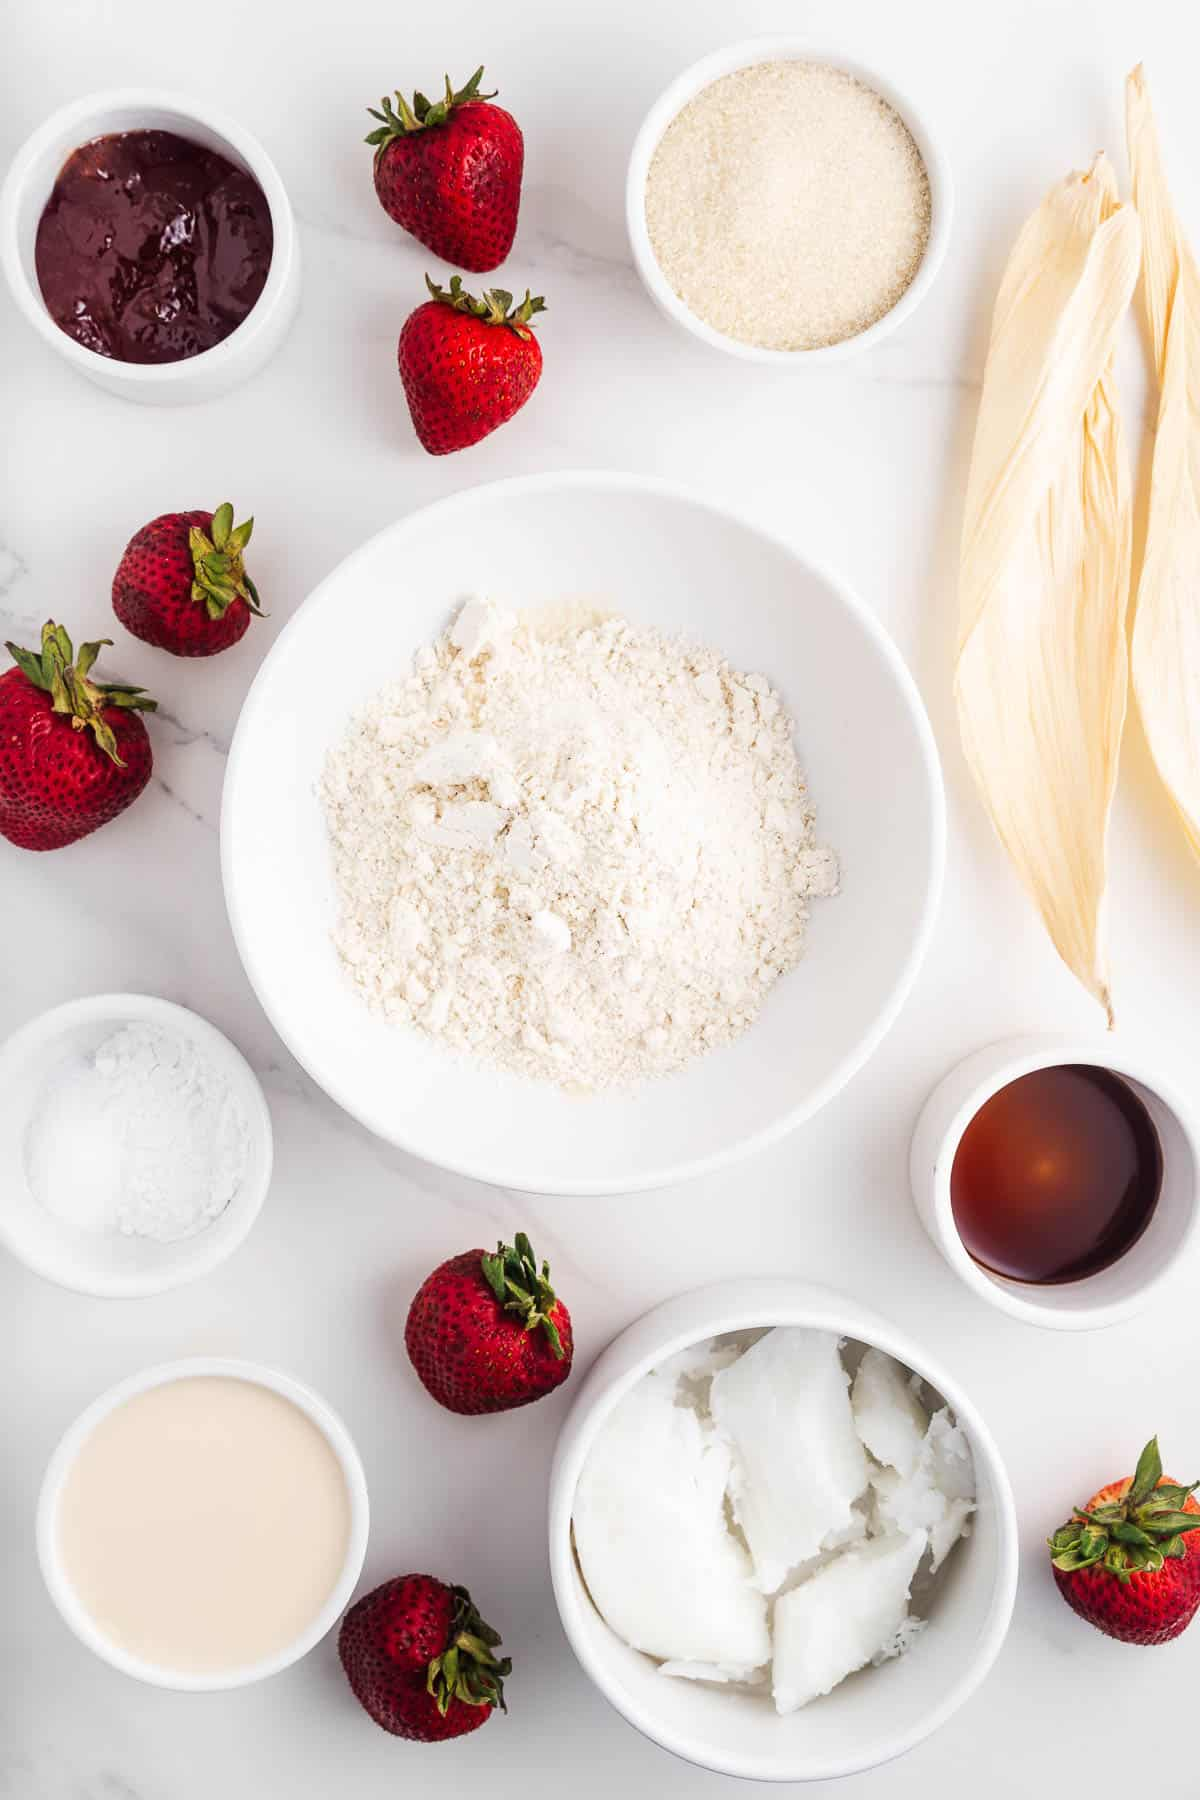 Ingredients for Strawberry Tamales